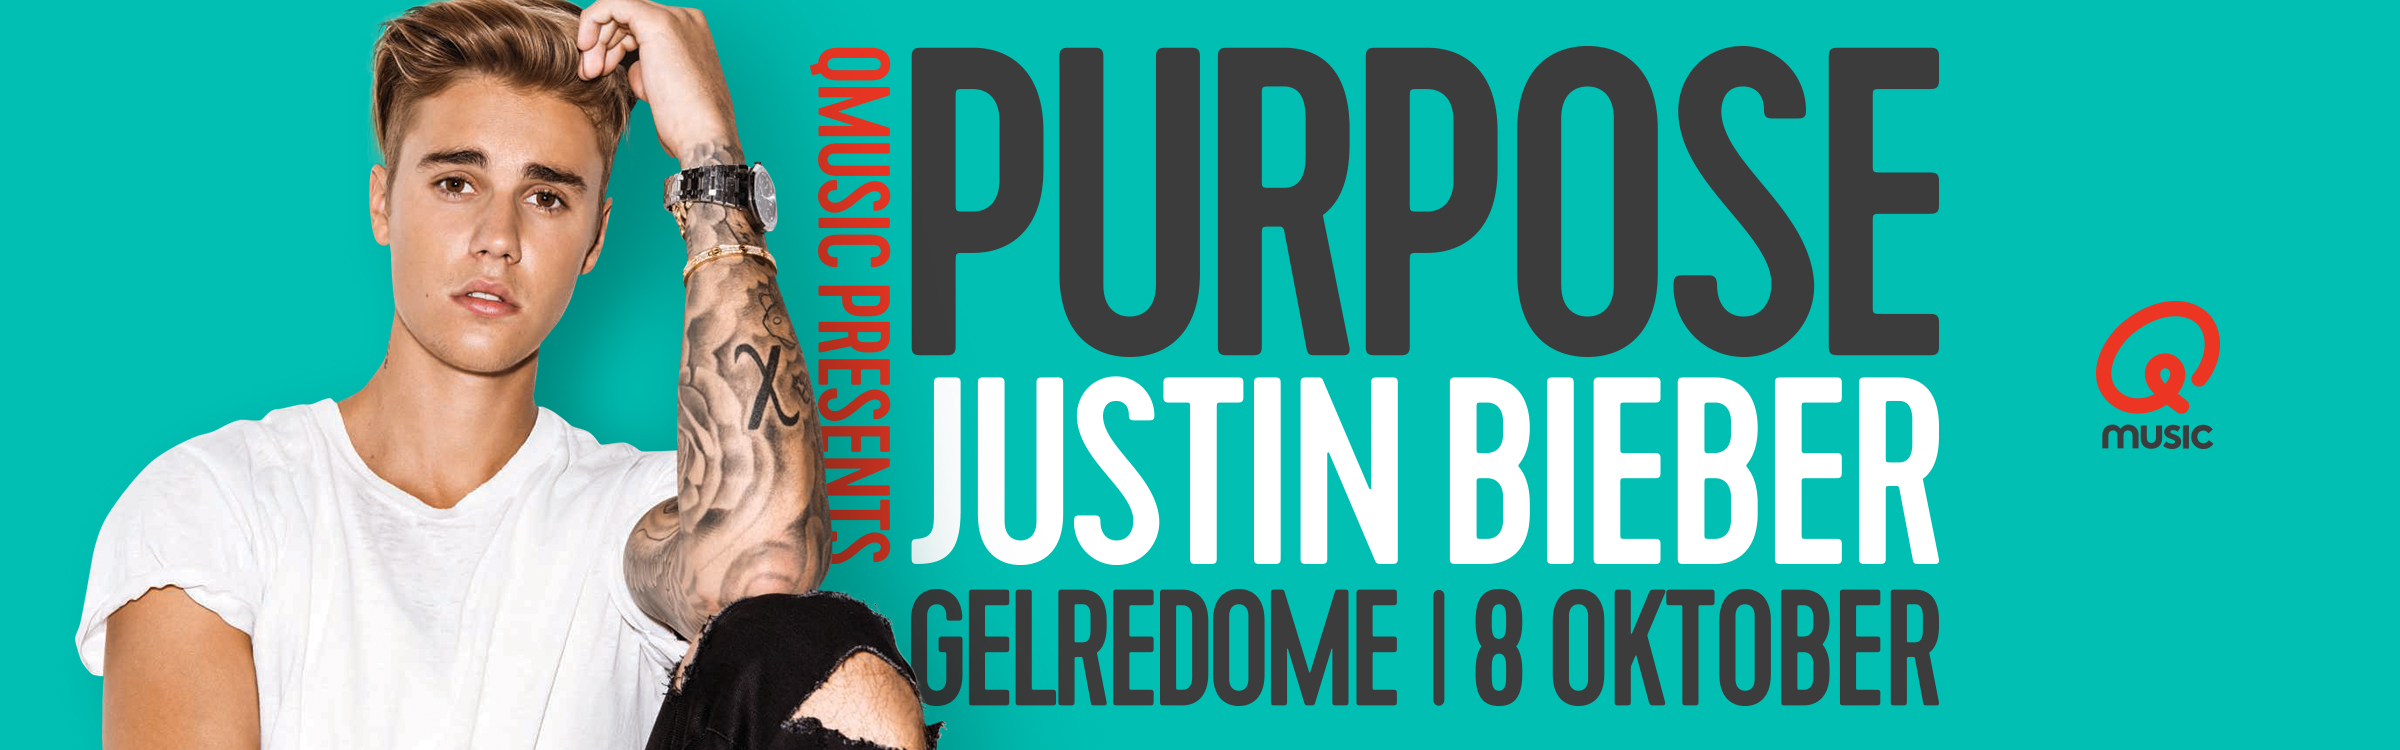 Qmusic actionheader jb